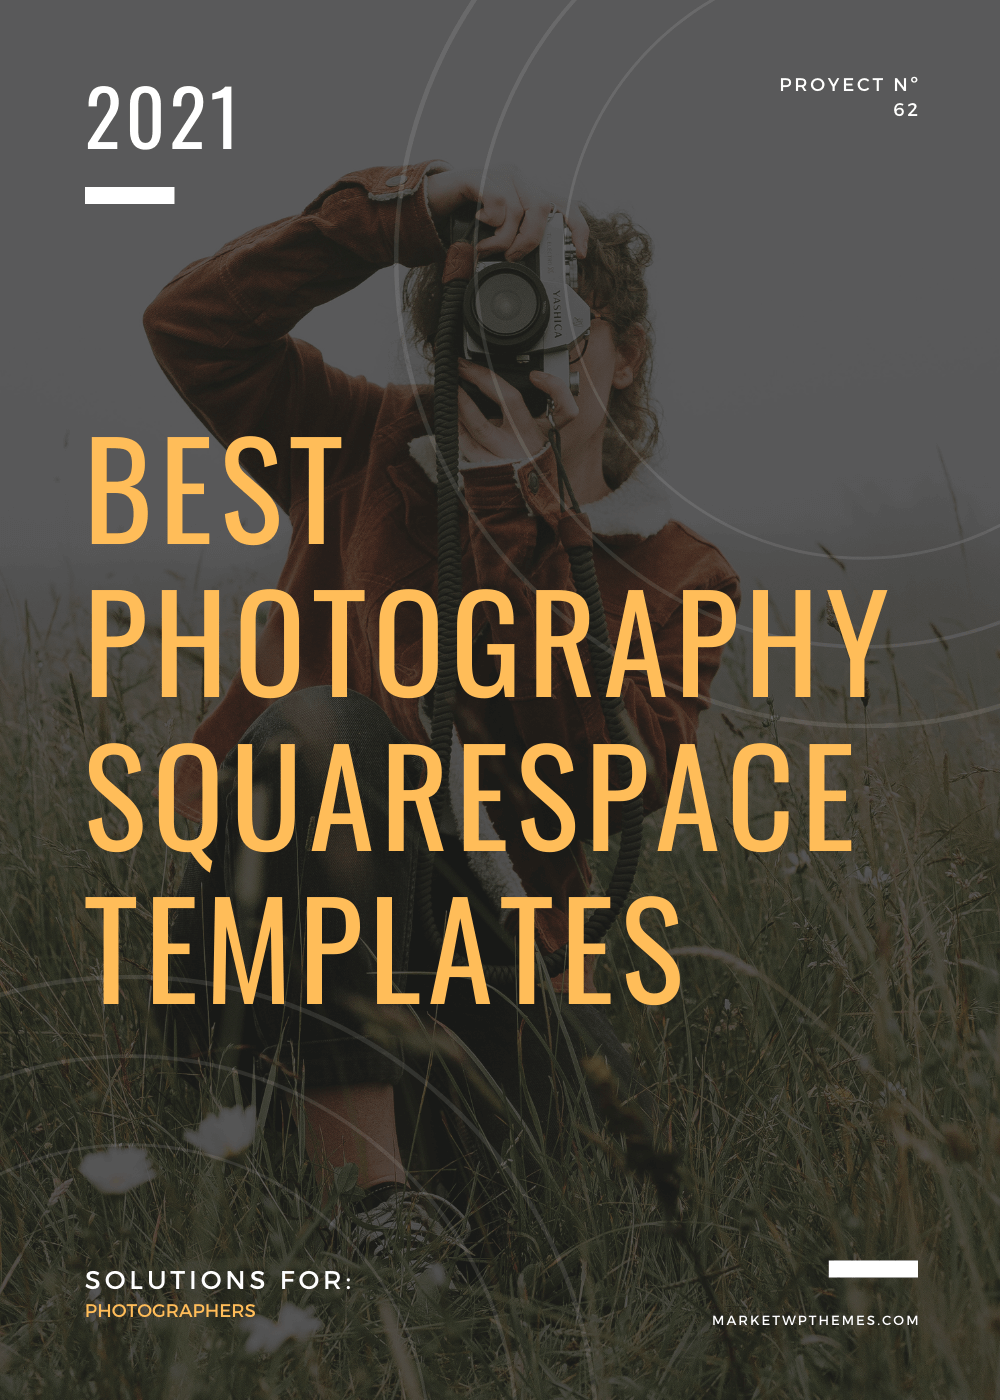 Best Photography Squarespace Templates